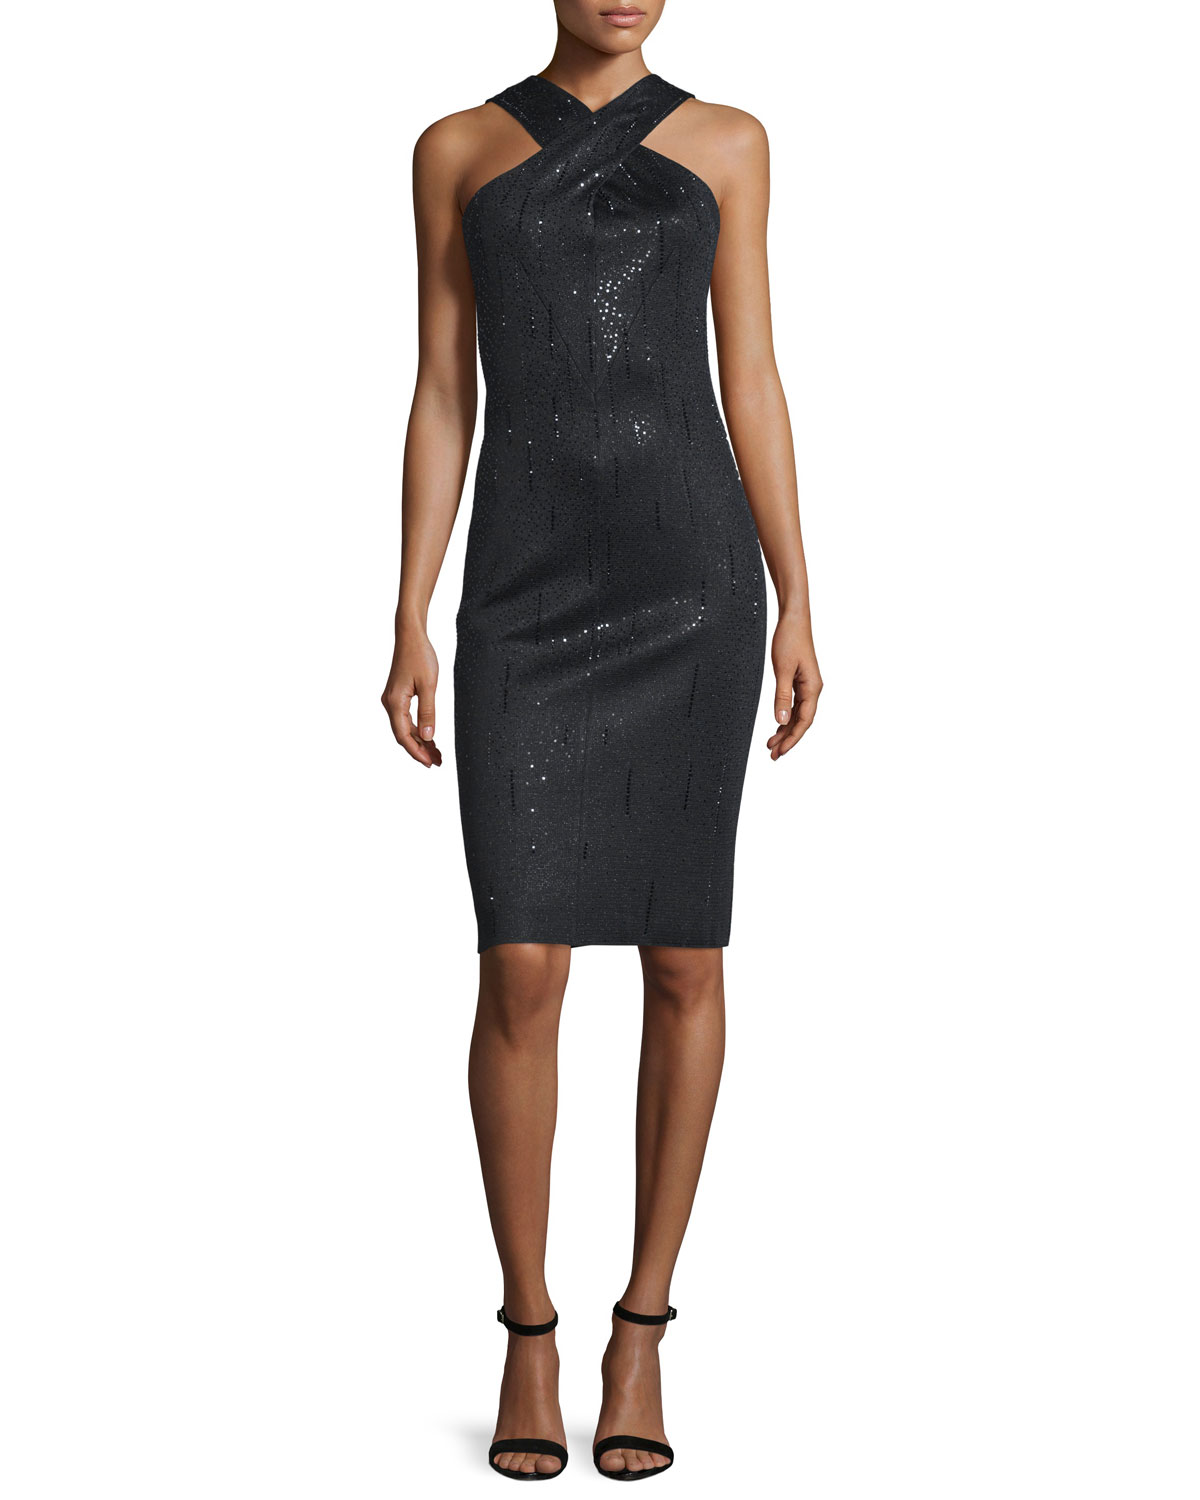 Tula Shimmery Cross-Front Dress, Caviar